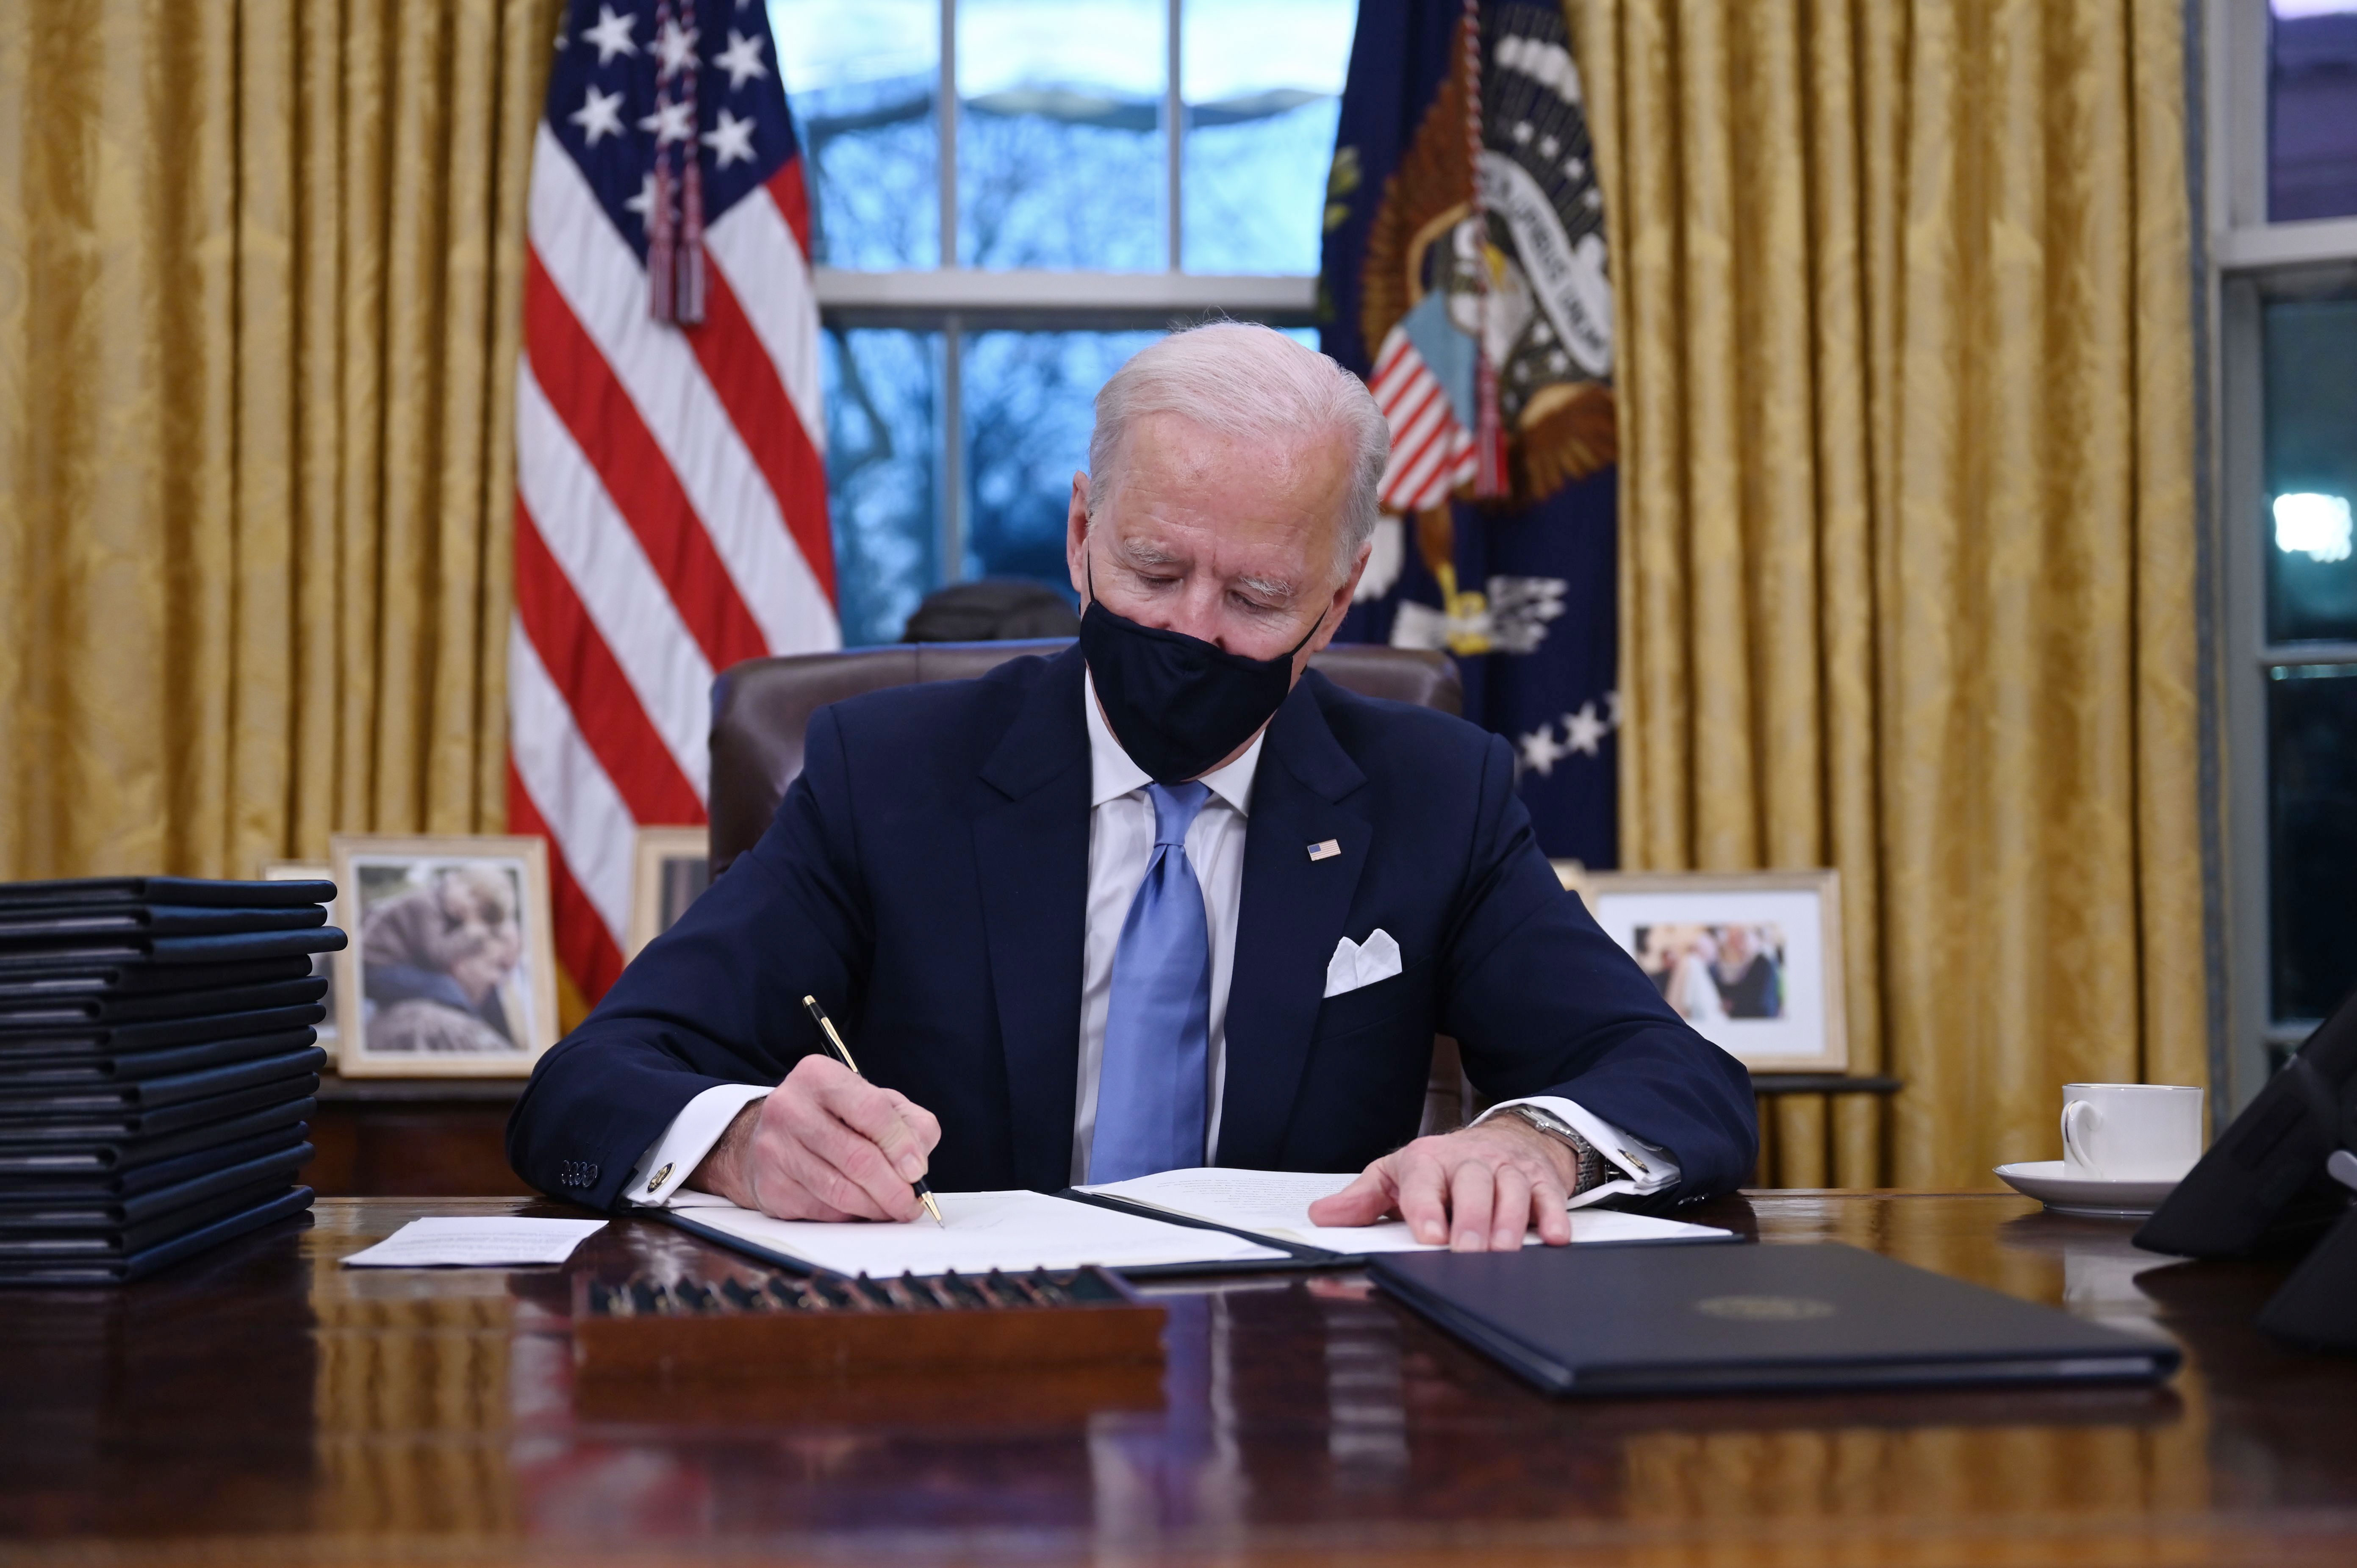 President Joe Biden sits in the Oval Office as he signs a series of orders at the White House in Washington, on Jan. 20, 2021.